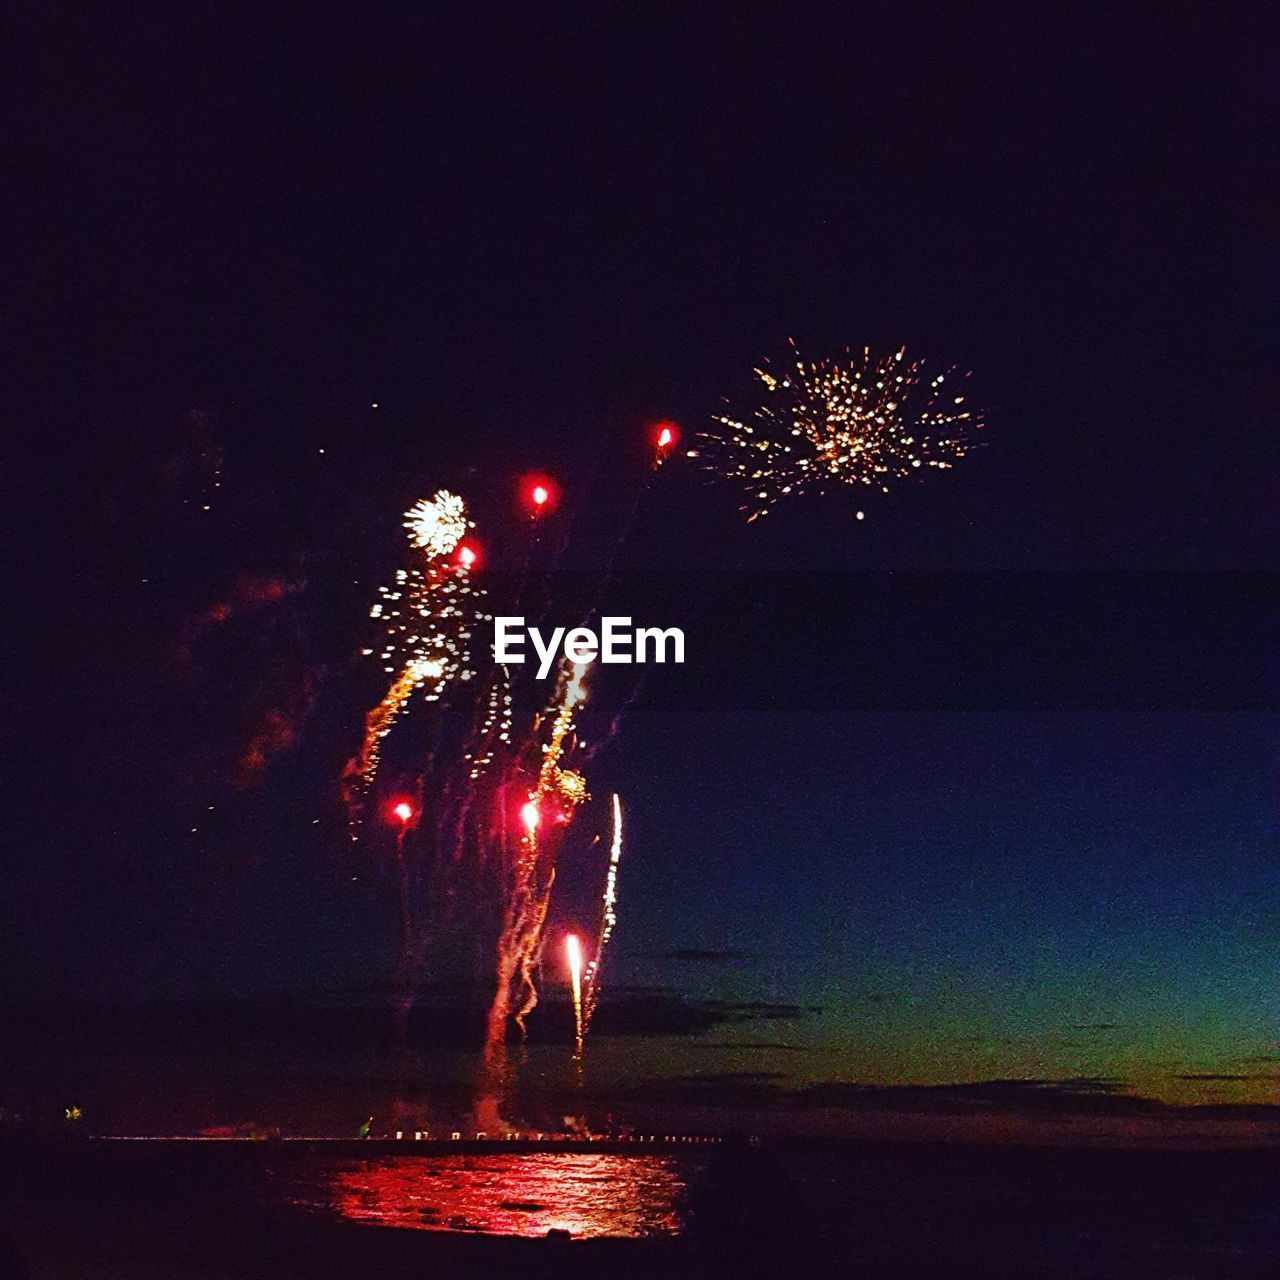 night, celebration, firework display, firework - man made object, arts culture and entertainment, exploding, illuminated, event, long exposure, glowing, blurred motion, motion, firework, low angle view, multi colored, outdoors, sky, no people, water